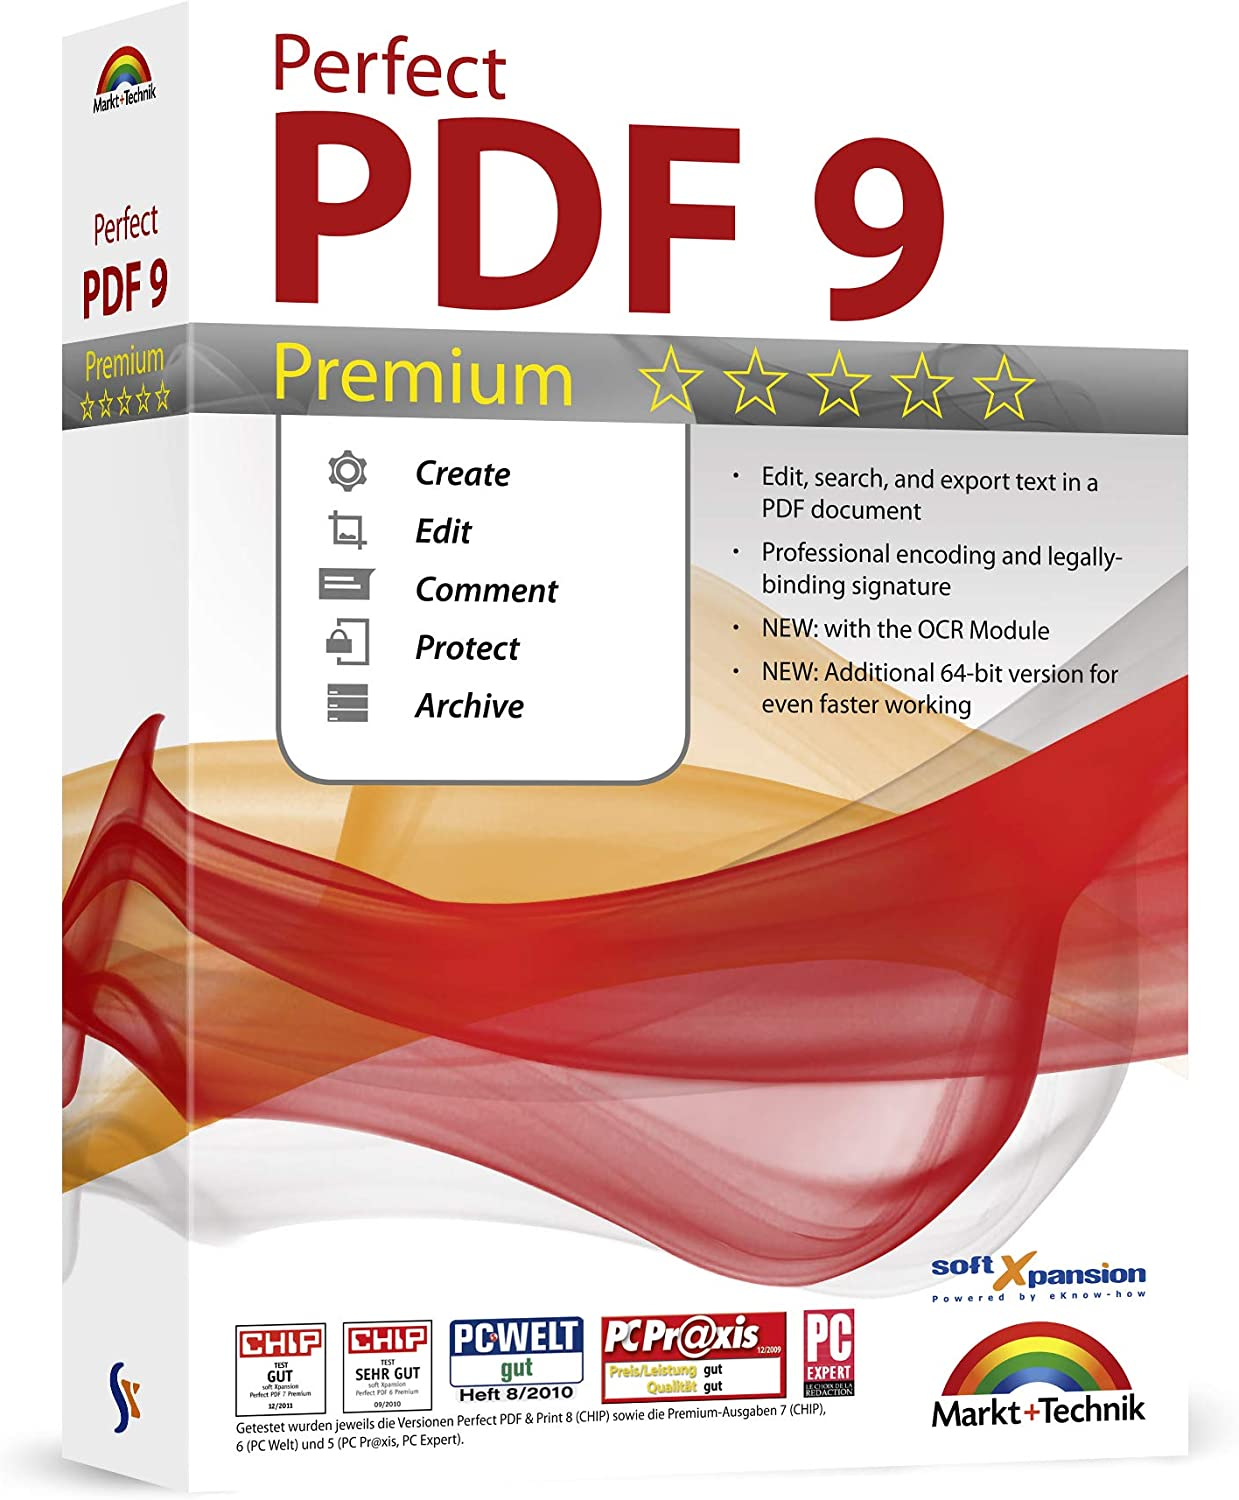 3959828160 Perfect PDF 9 Premium - Powerful PDF Editing Software - 100% Compatible with Adobe Acrobat - Create, Edit, Convert, Protect, Add Comments, Insert Digital Signatures, OCR Recognition 71-PWmhw3sL